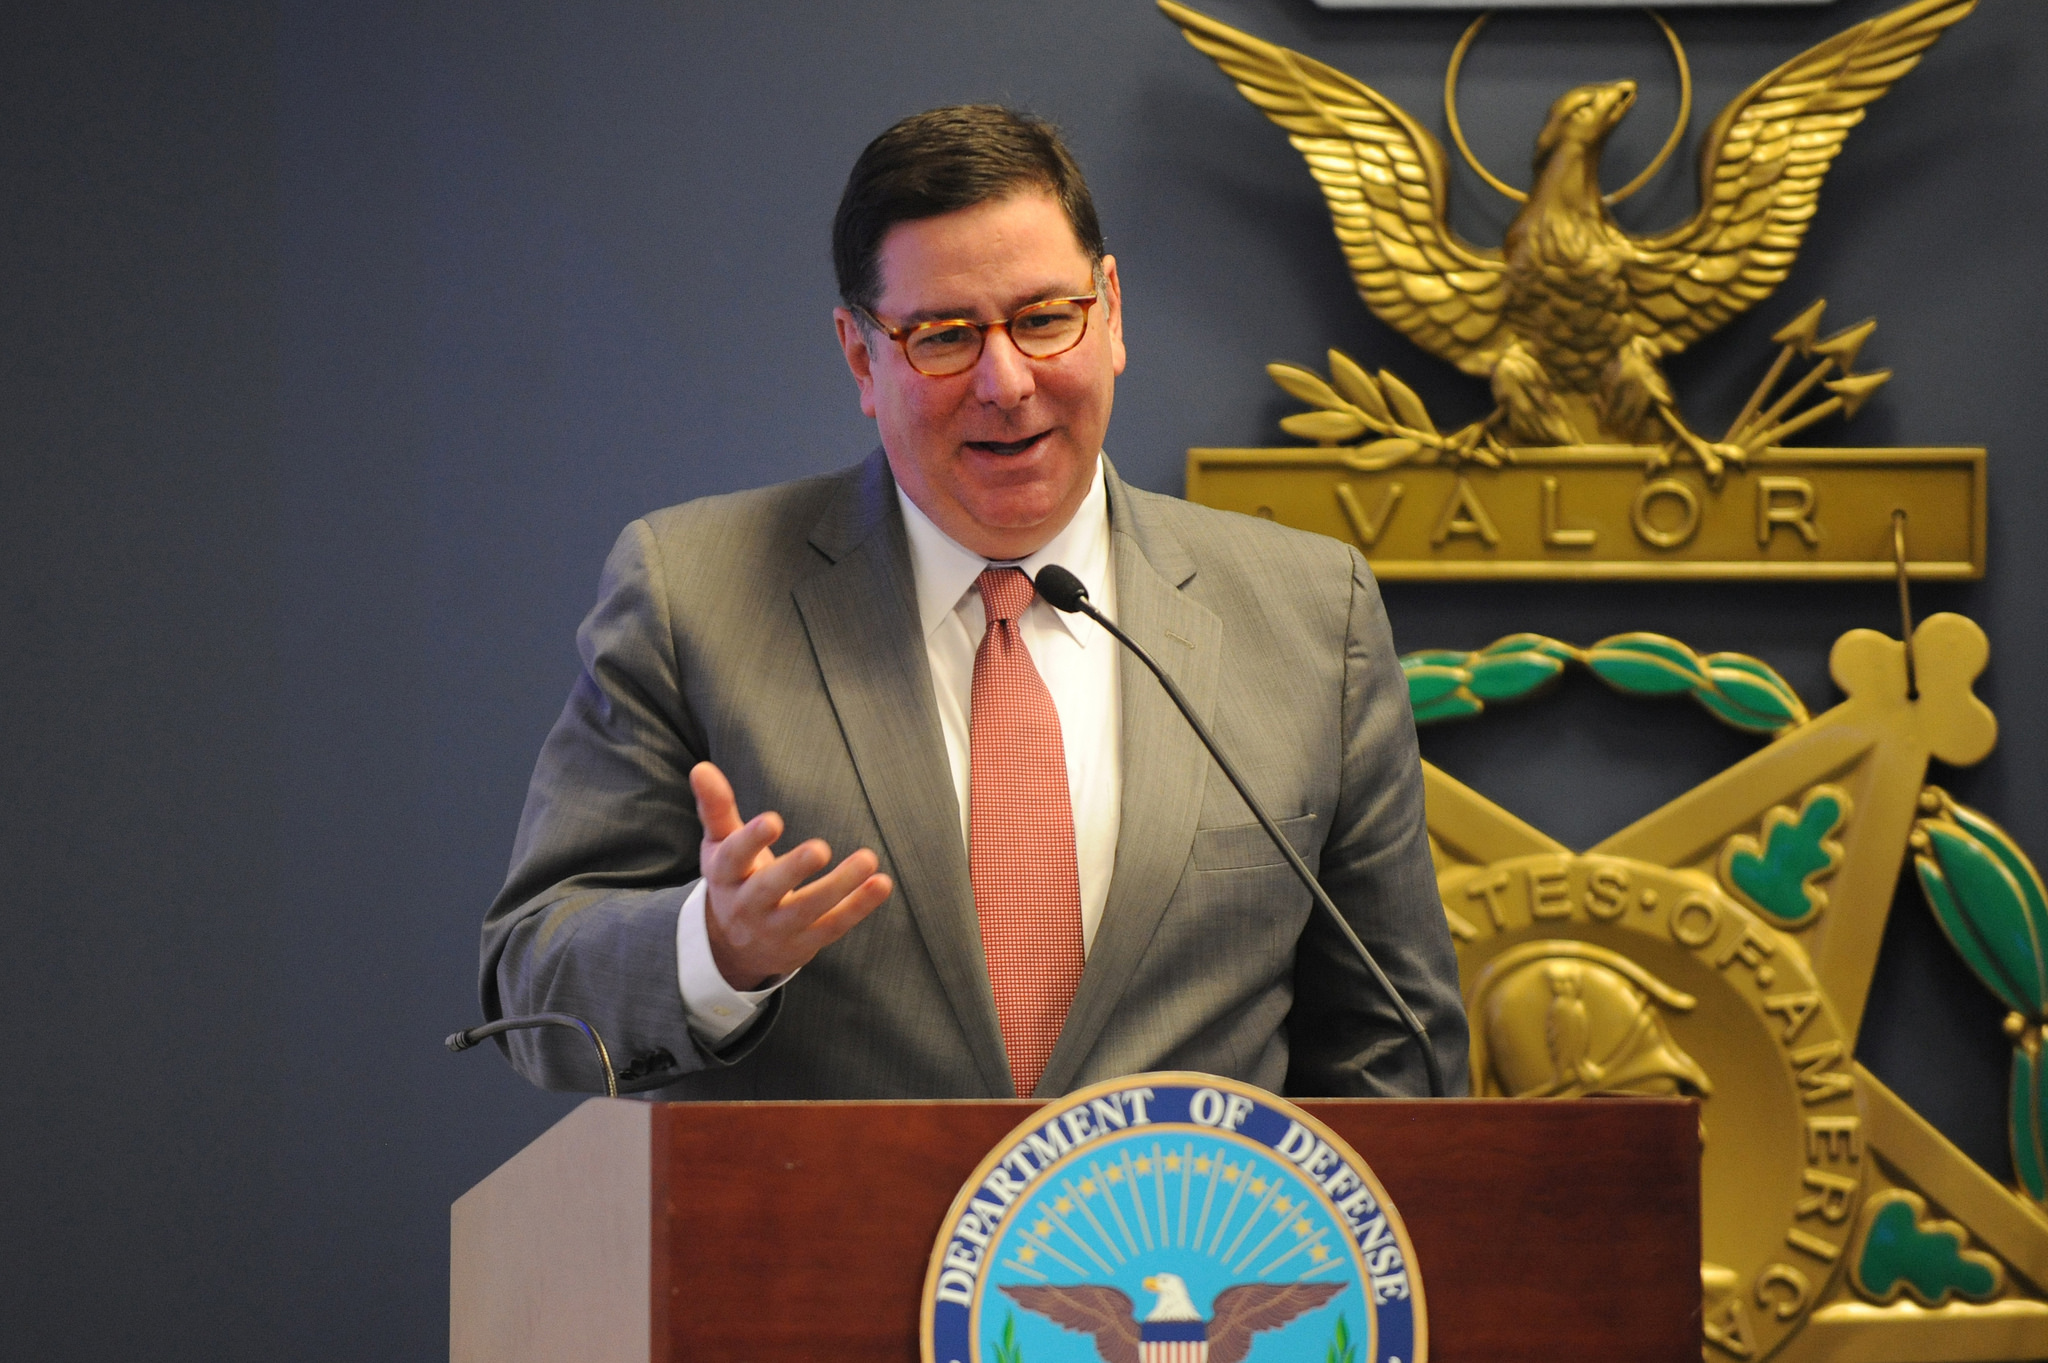 <p>Mayor Bill Peduto of Pittsburgh is sticking with Paris. Flickr/DoD News</p>